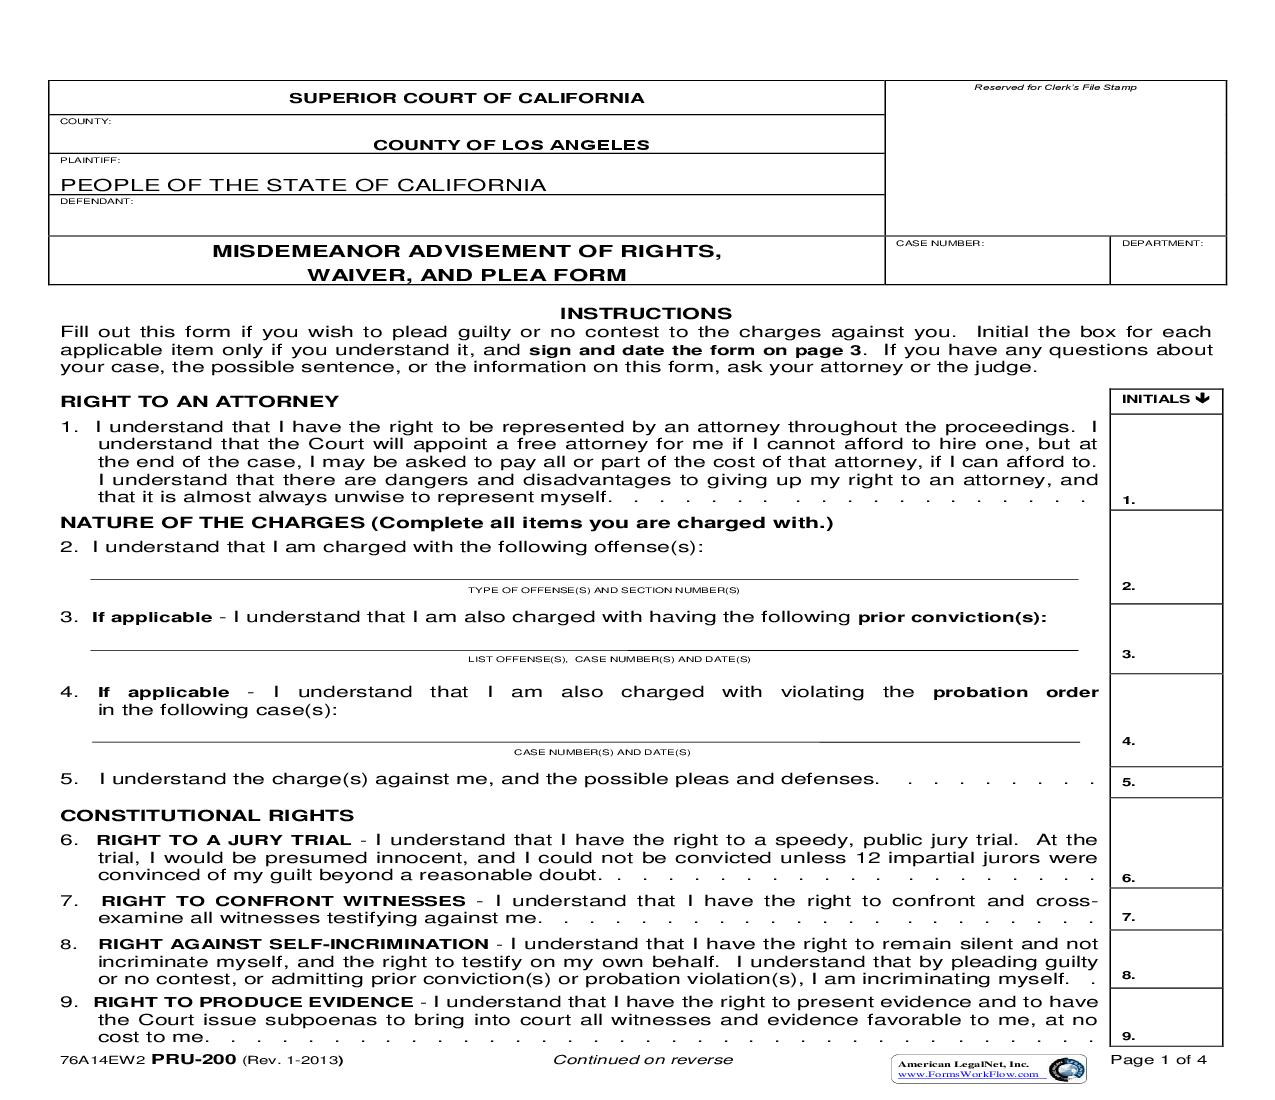 Misdemeanor Advisement Of Rights Waiver And Plea Form (Los Angeles) {PRU-200} | Pdf Fpdf Doc Docx | California